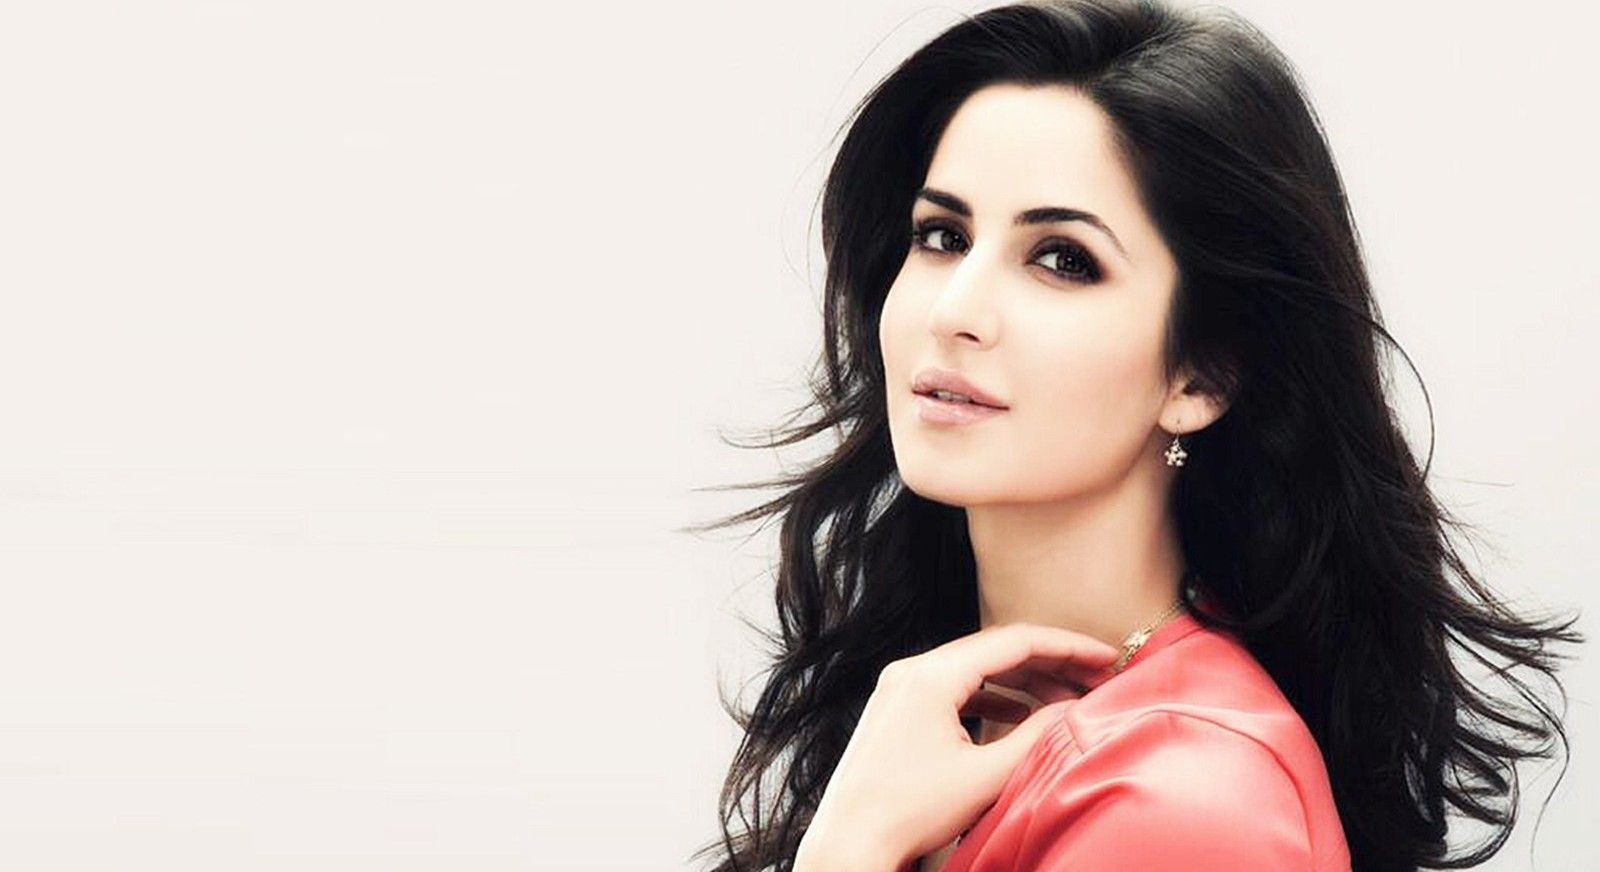 katrina kaif full hd wallpapers free download 1600×872 katrina kaif